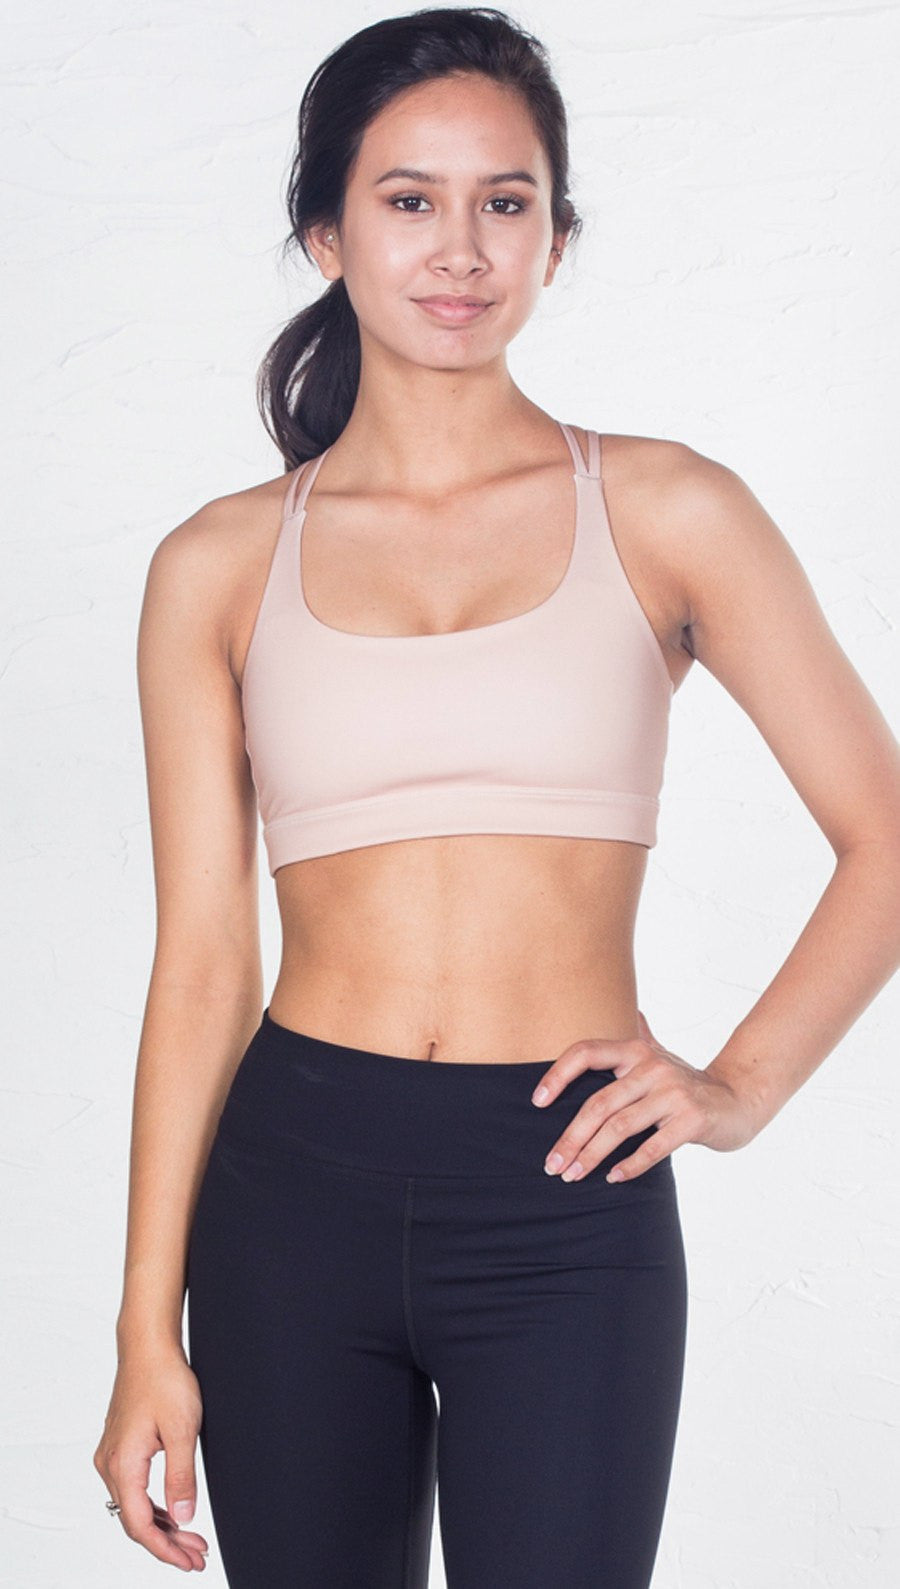 front view of model wearing nude/beige sports bra